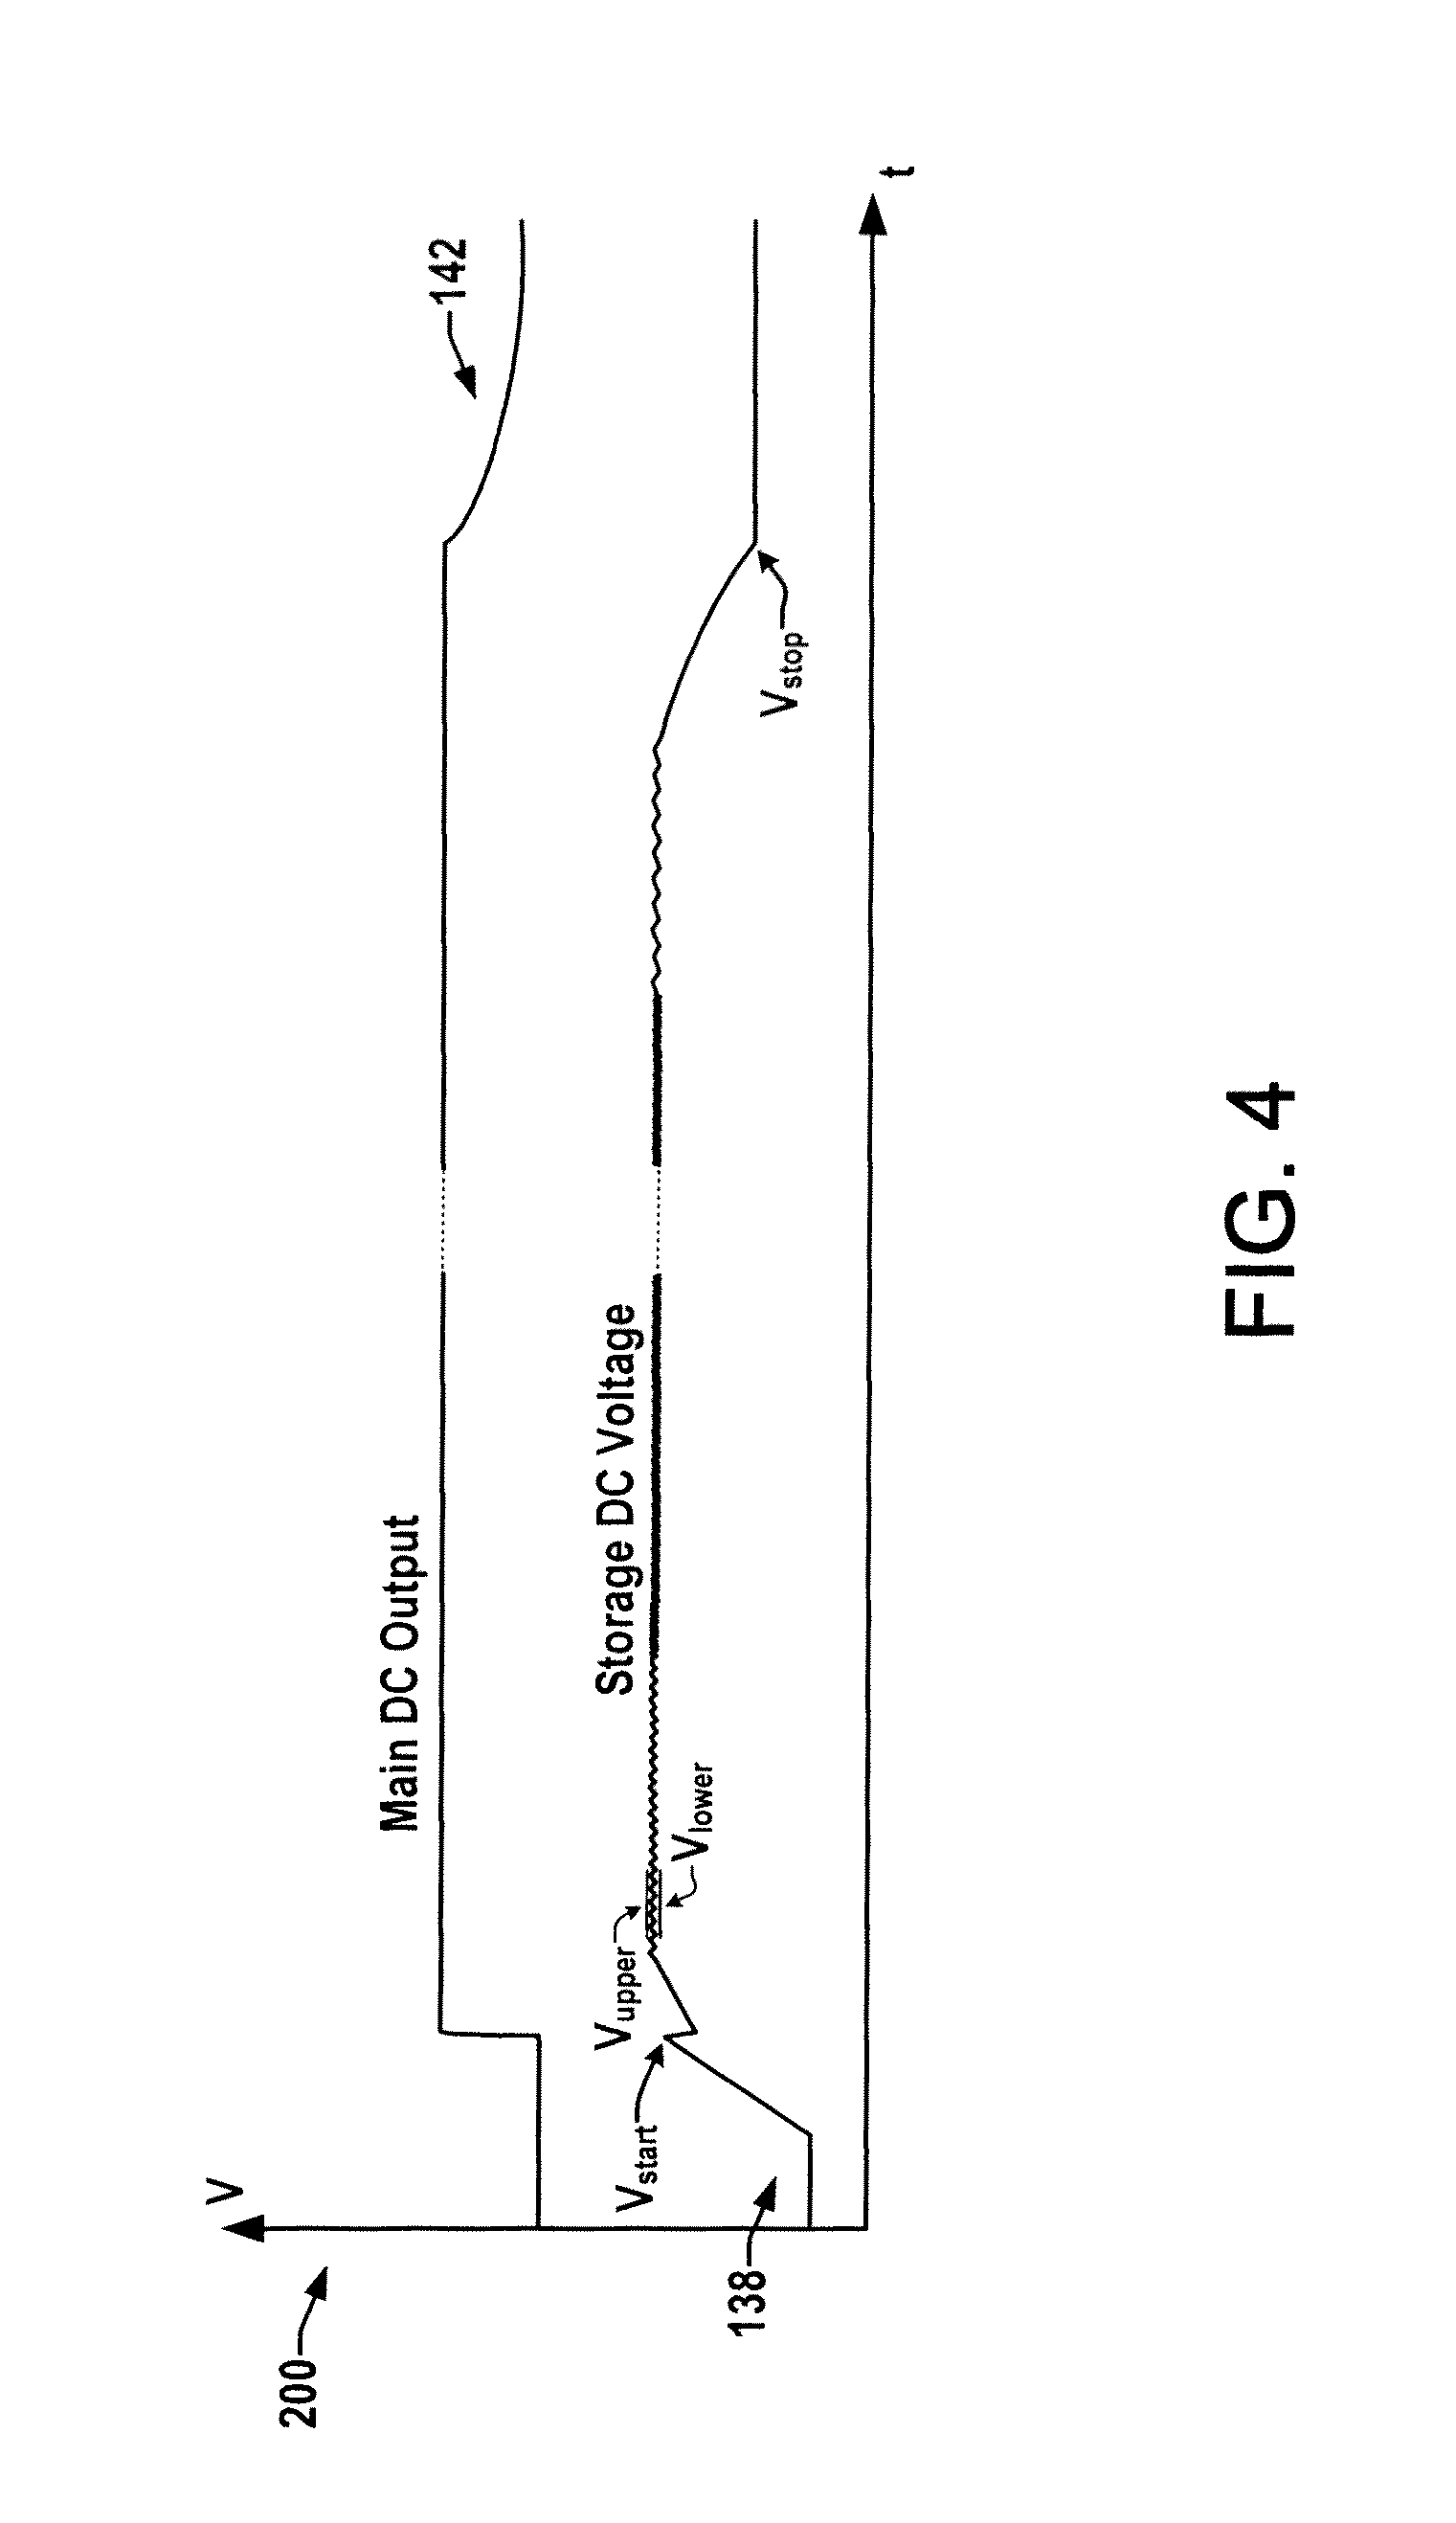 Patent Us7965526 Self Powered Supply For Power Converter Switch Electronic Crowbar Ac And Dc Lines Drawing